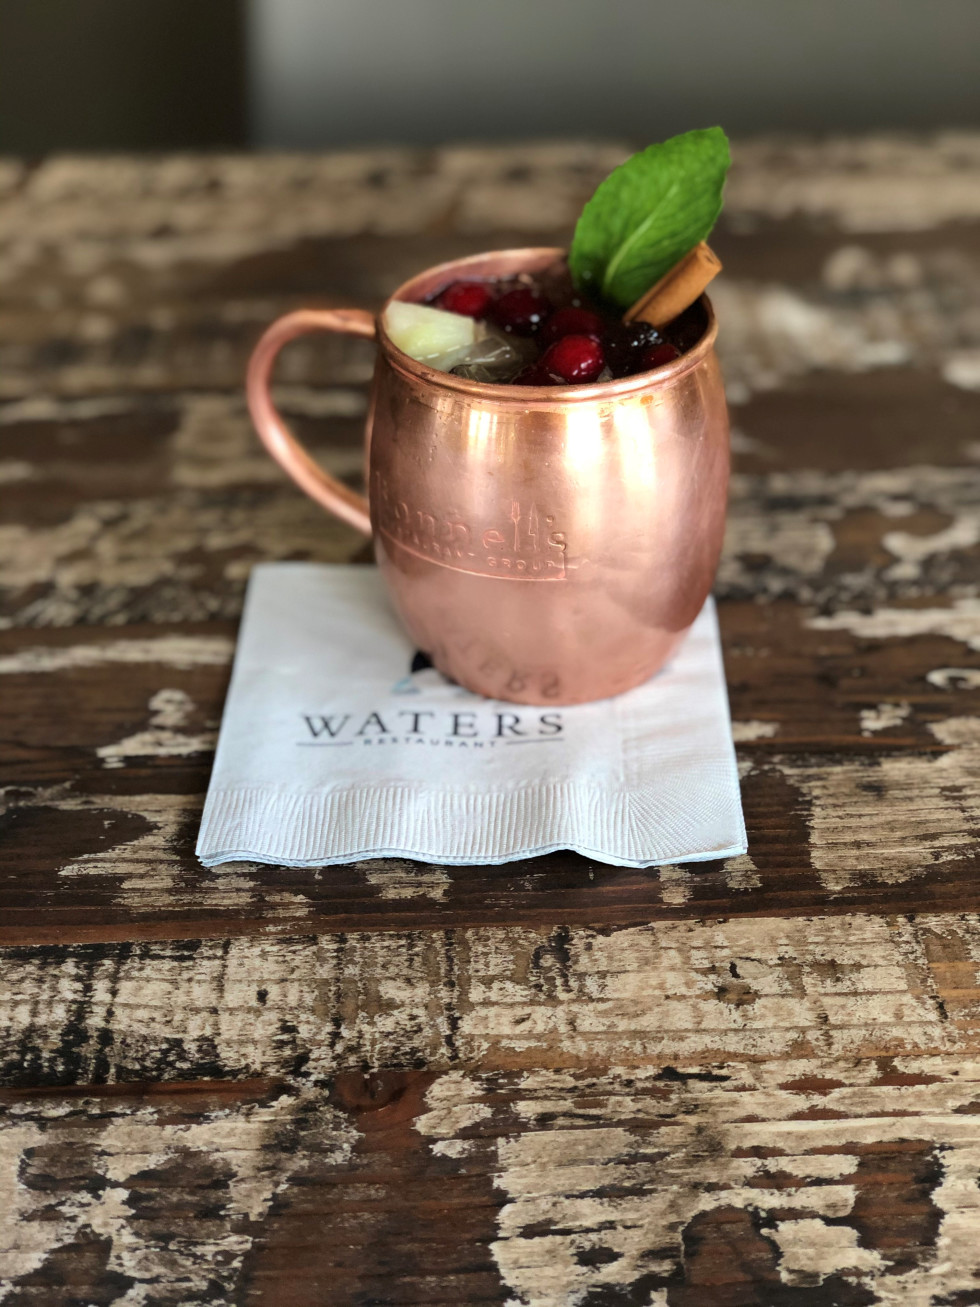 Waters cranberry apple mule